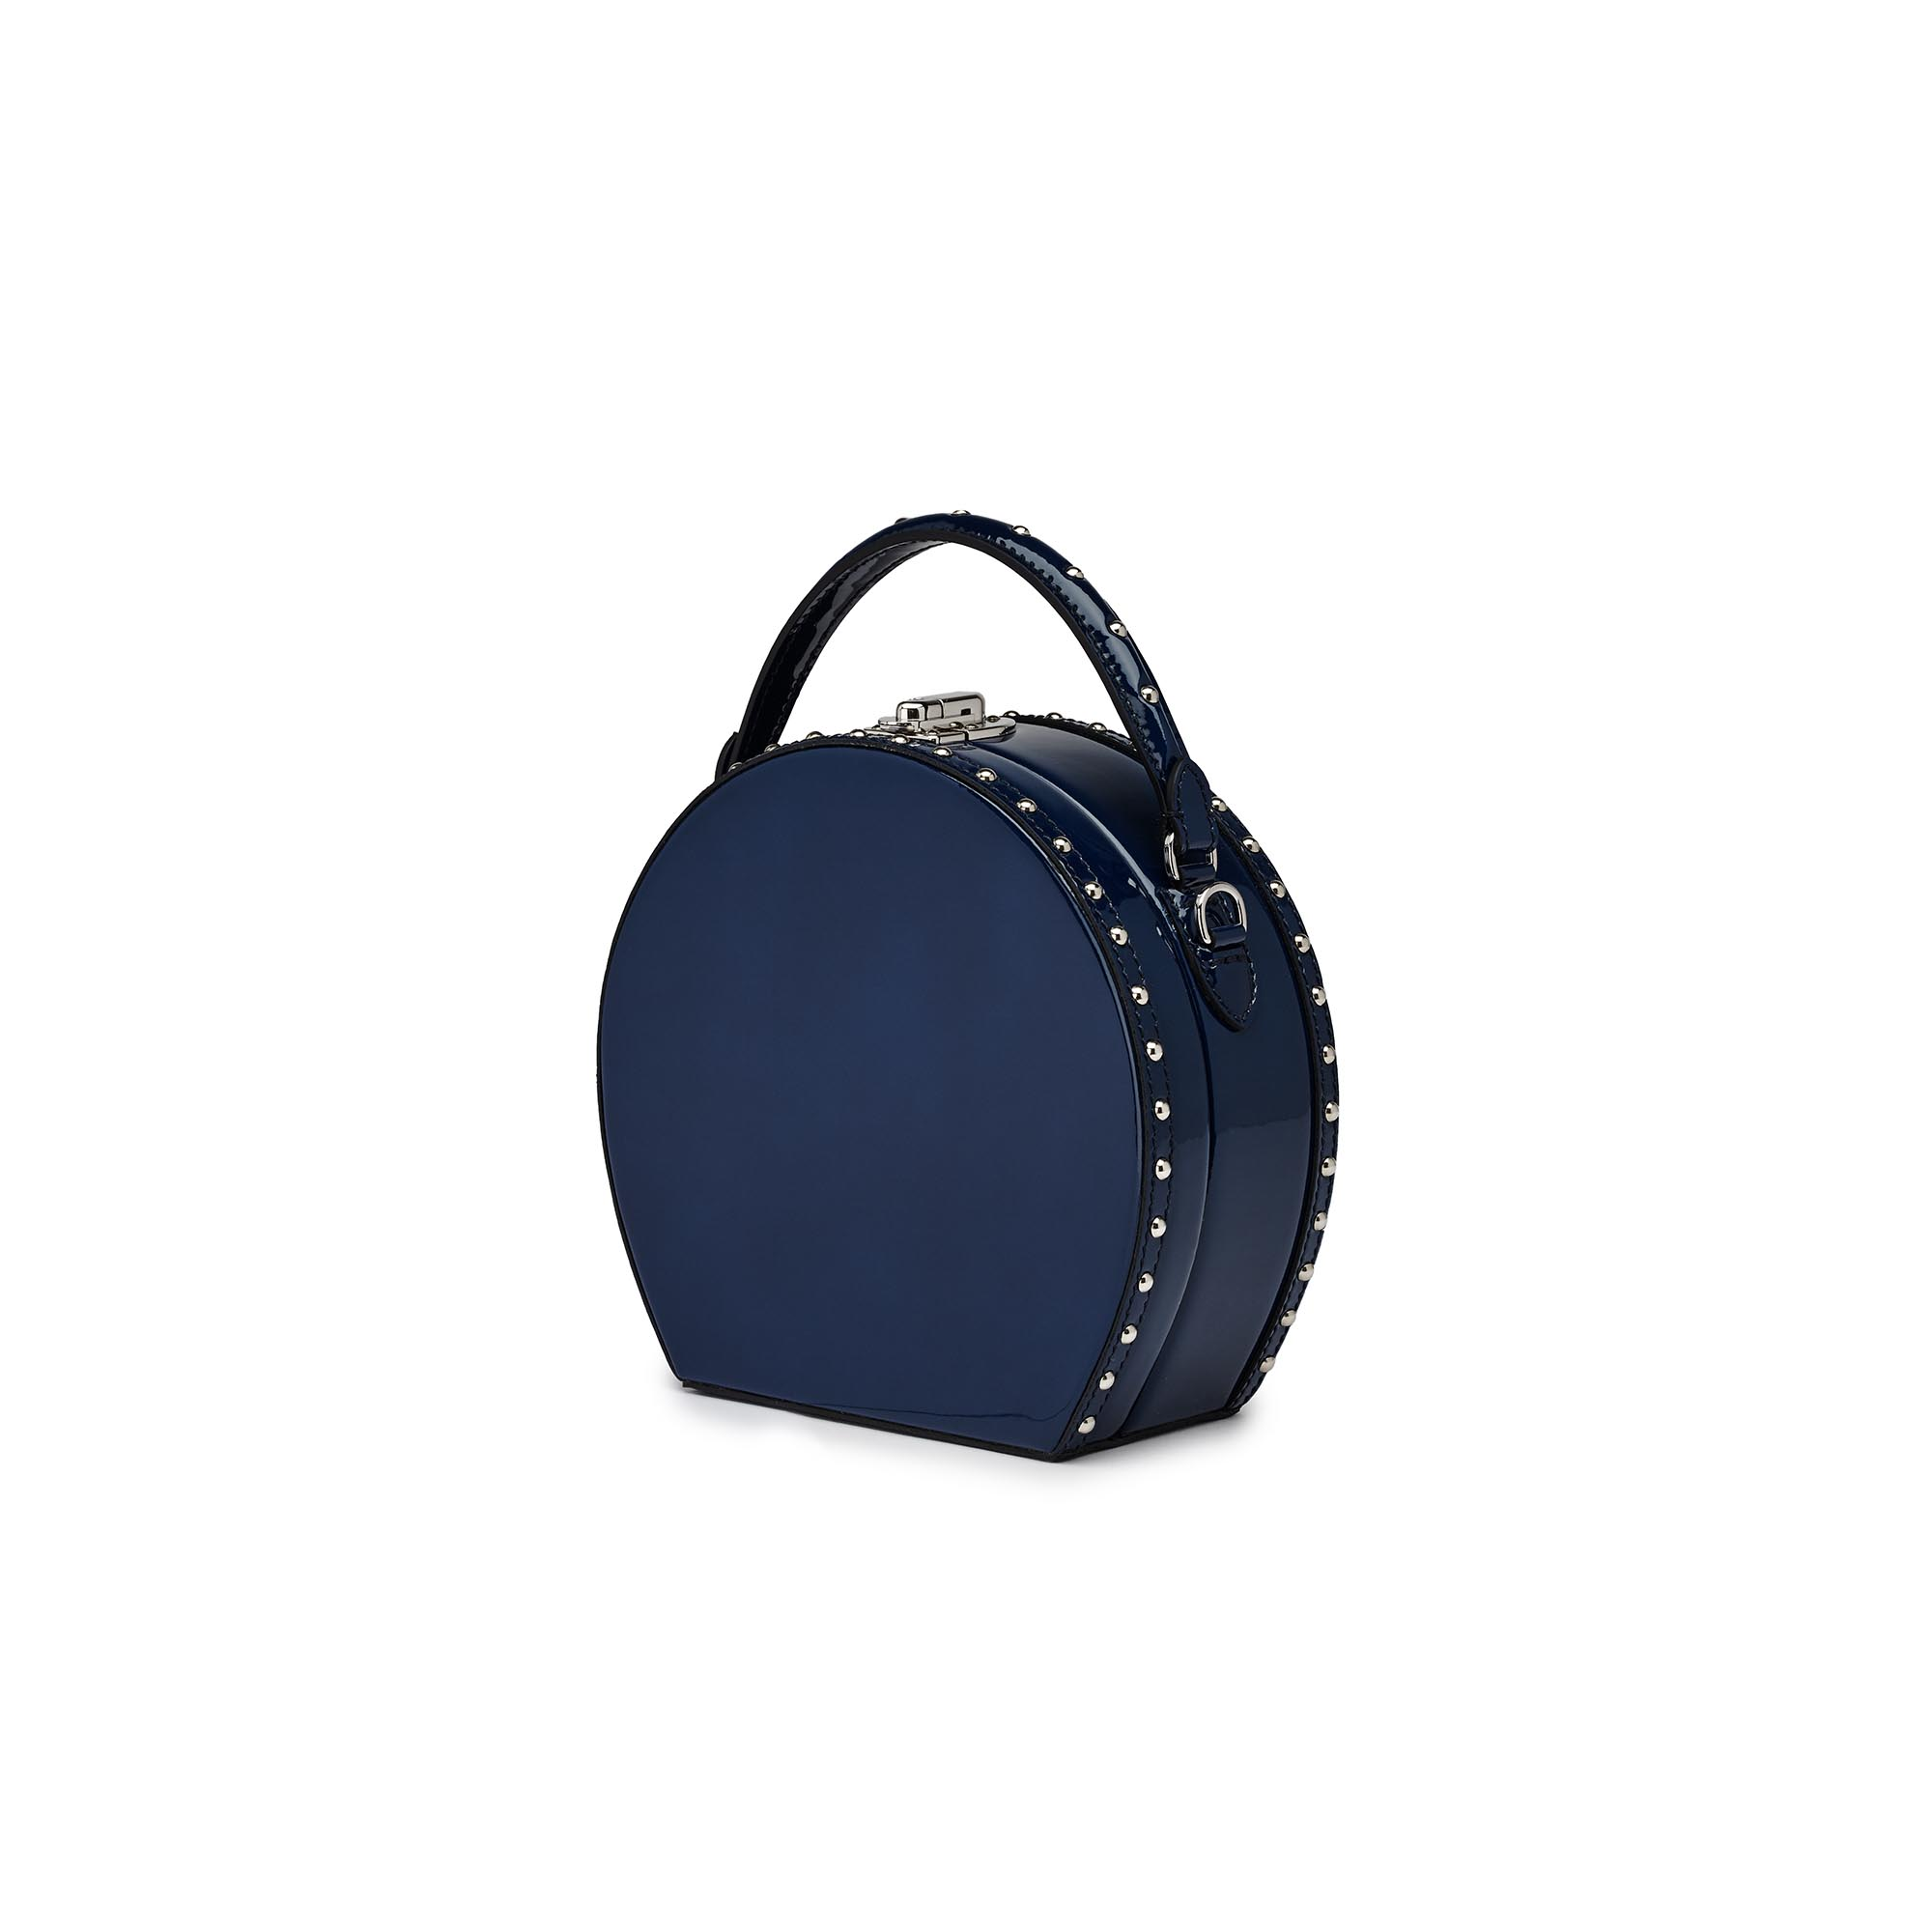 Regular-Bertoncina-dark-blue-patent-leather-bag-Bertoni-1949_02